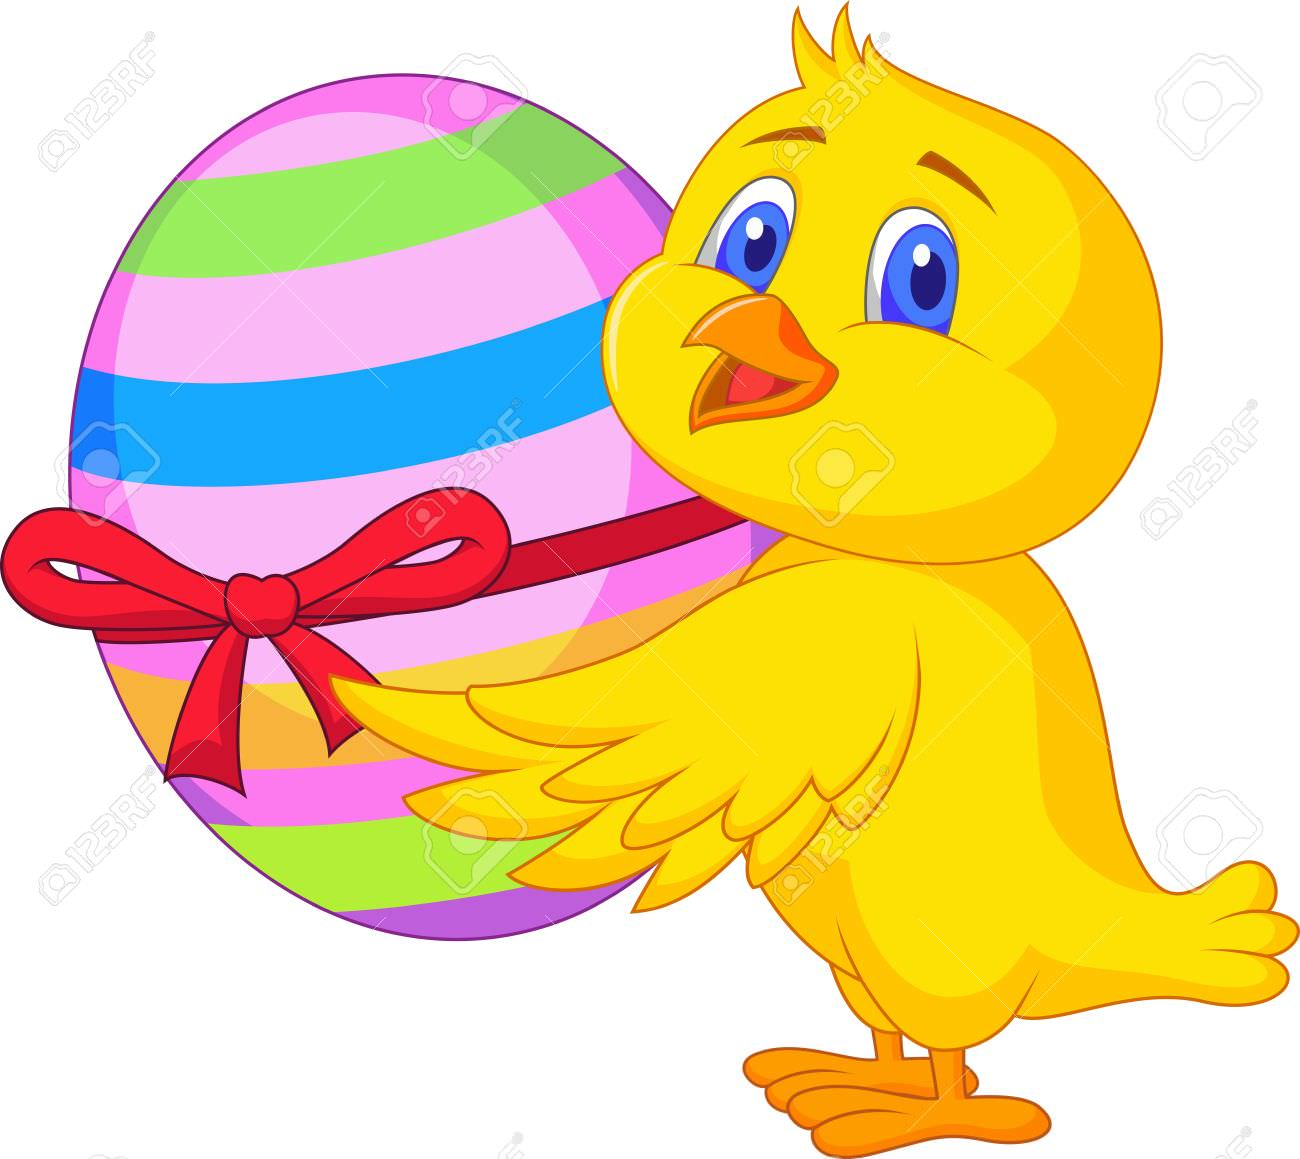 Easter Chicken,Background,Designs,Egg,Ribbon